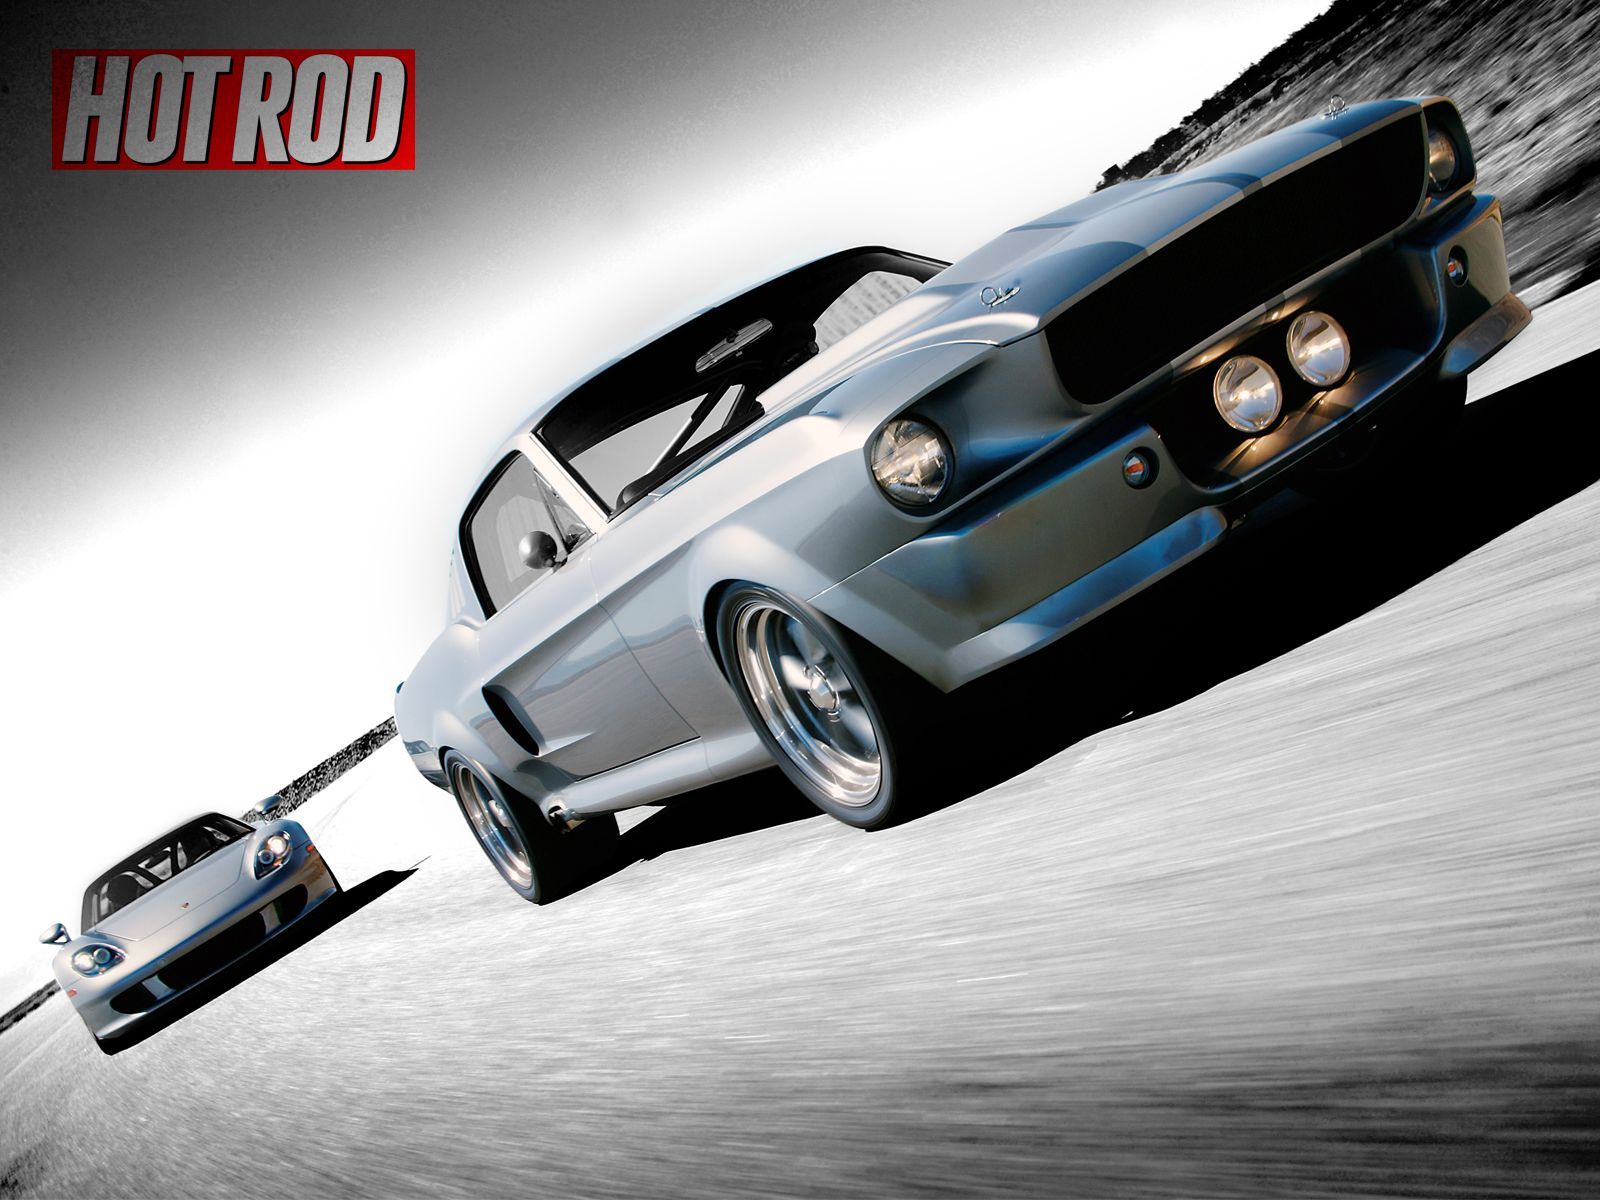 Vehicles - Hot Rod Wallpaper